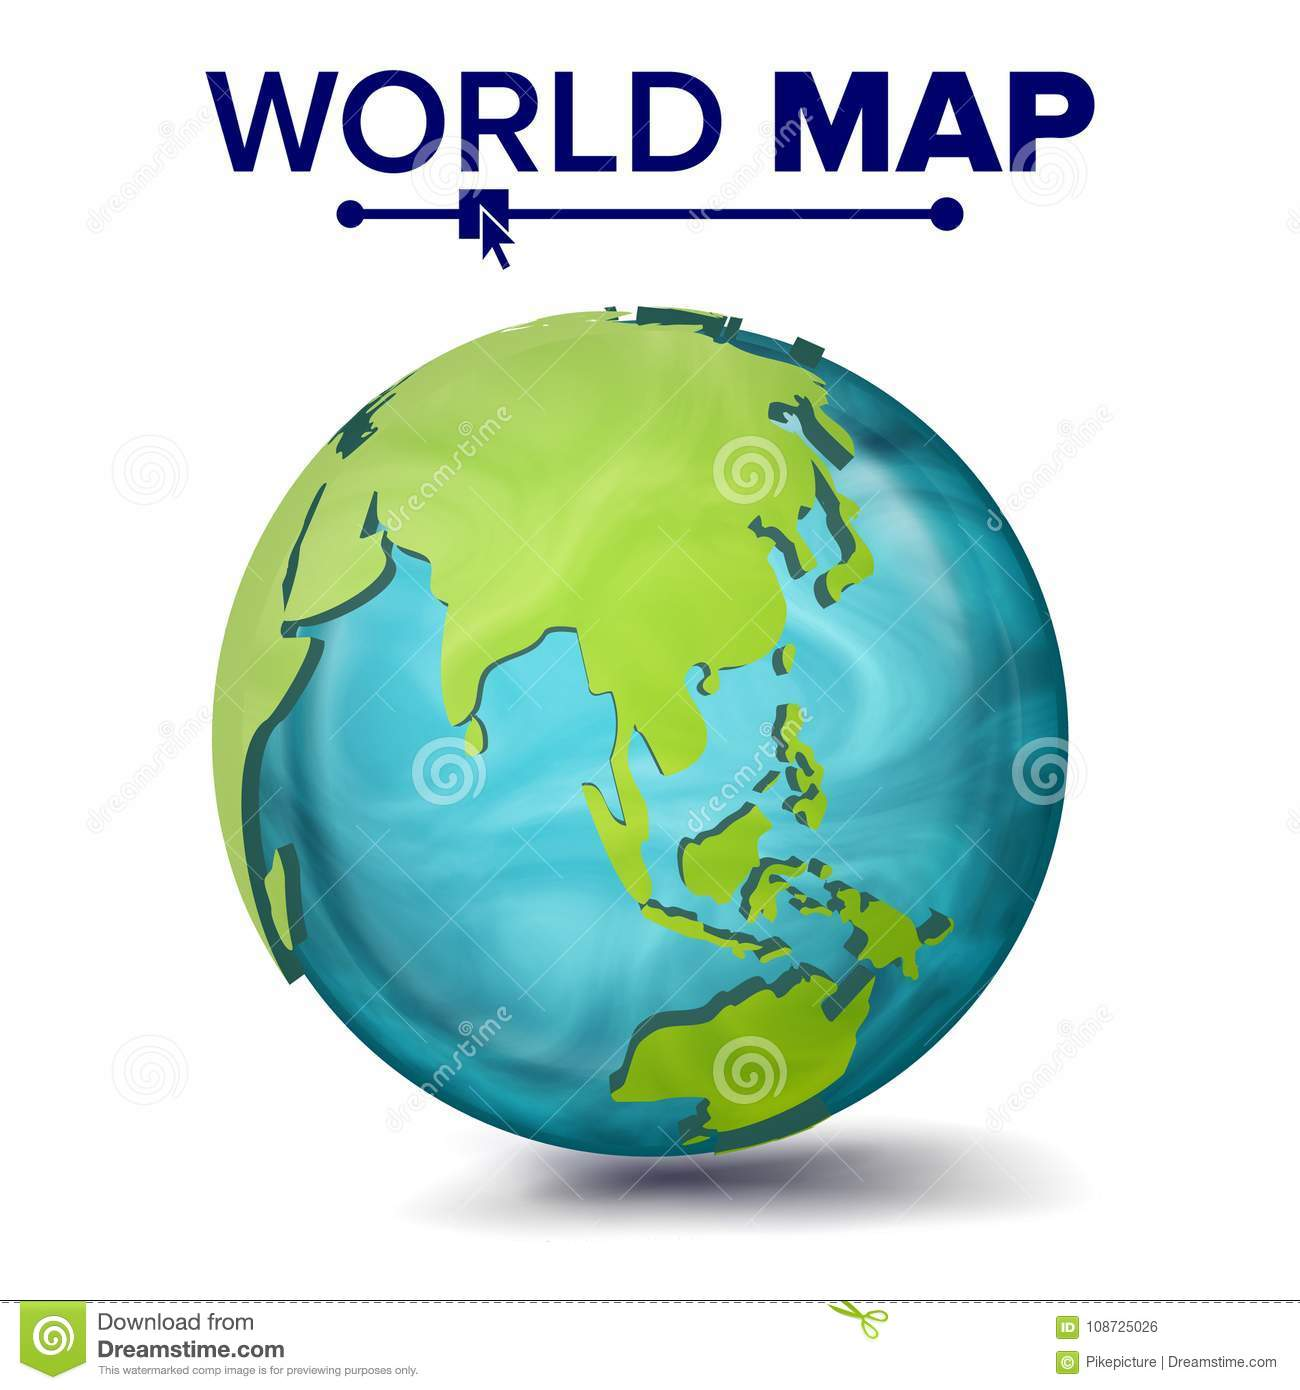 The Continent Of Asia Map.World Map Vector 3d Planet Sphere Earth With Continents Asia